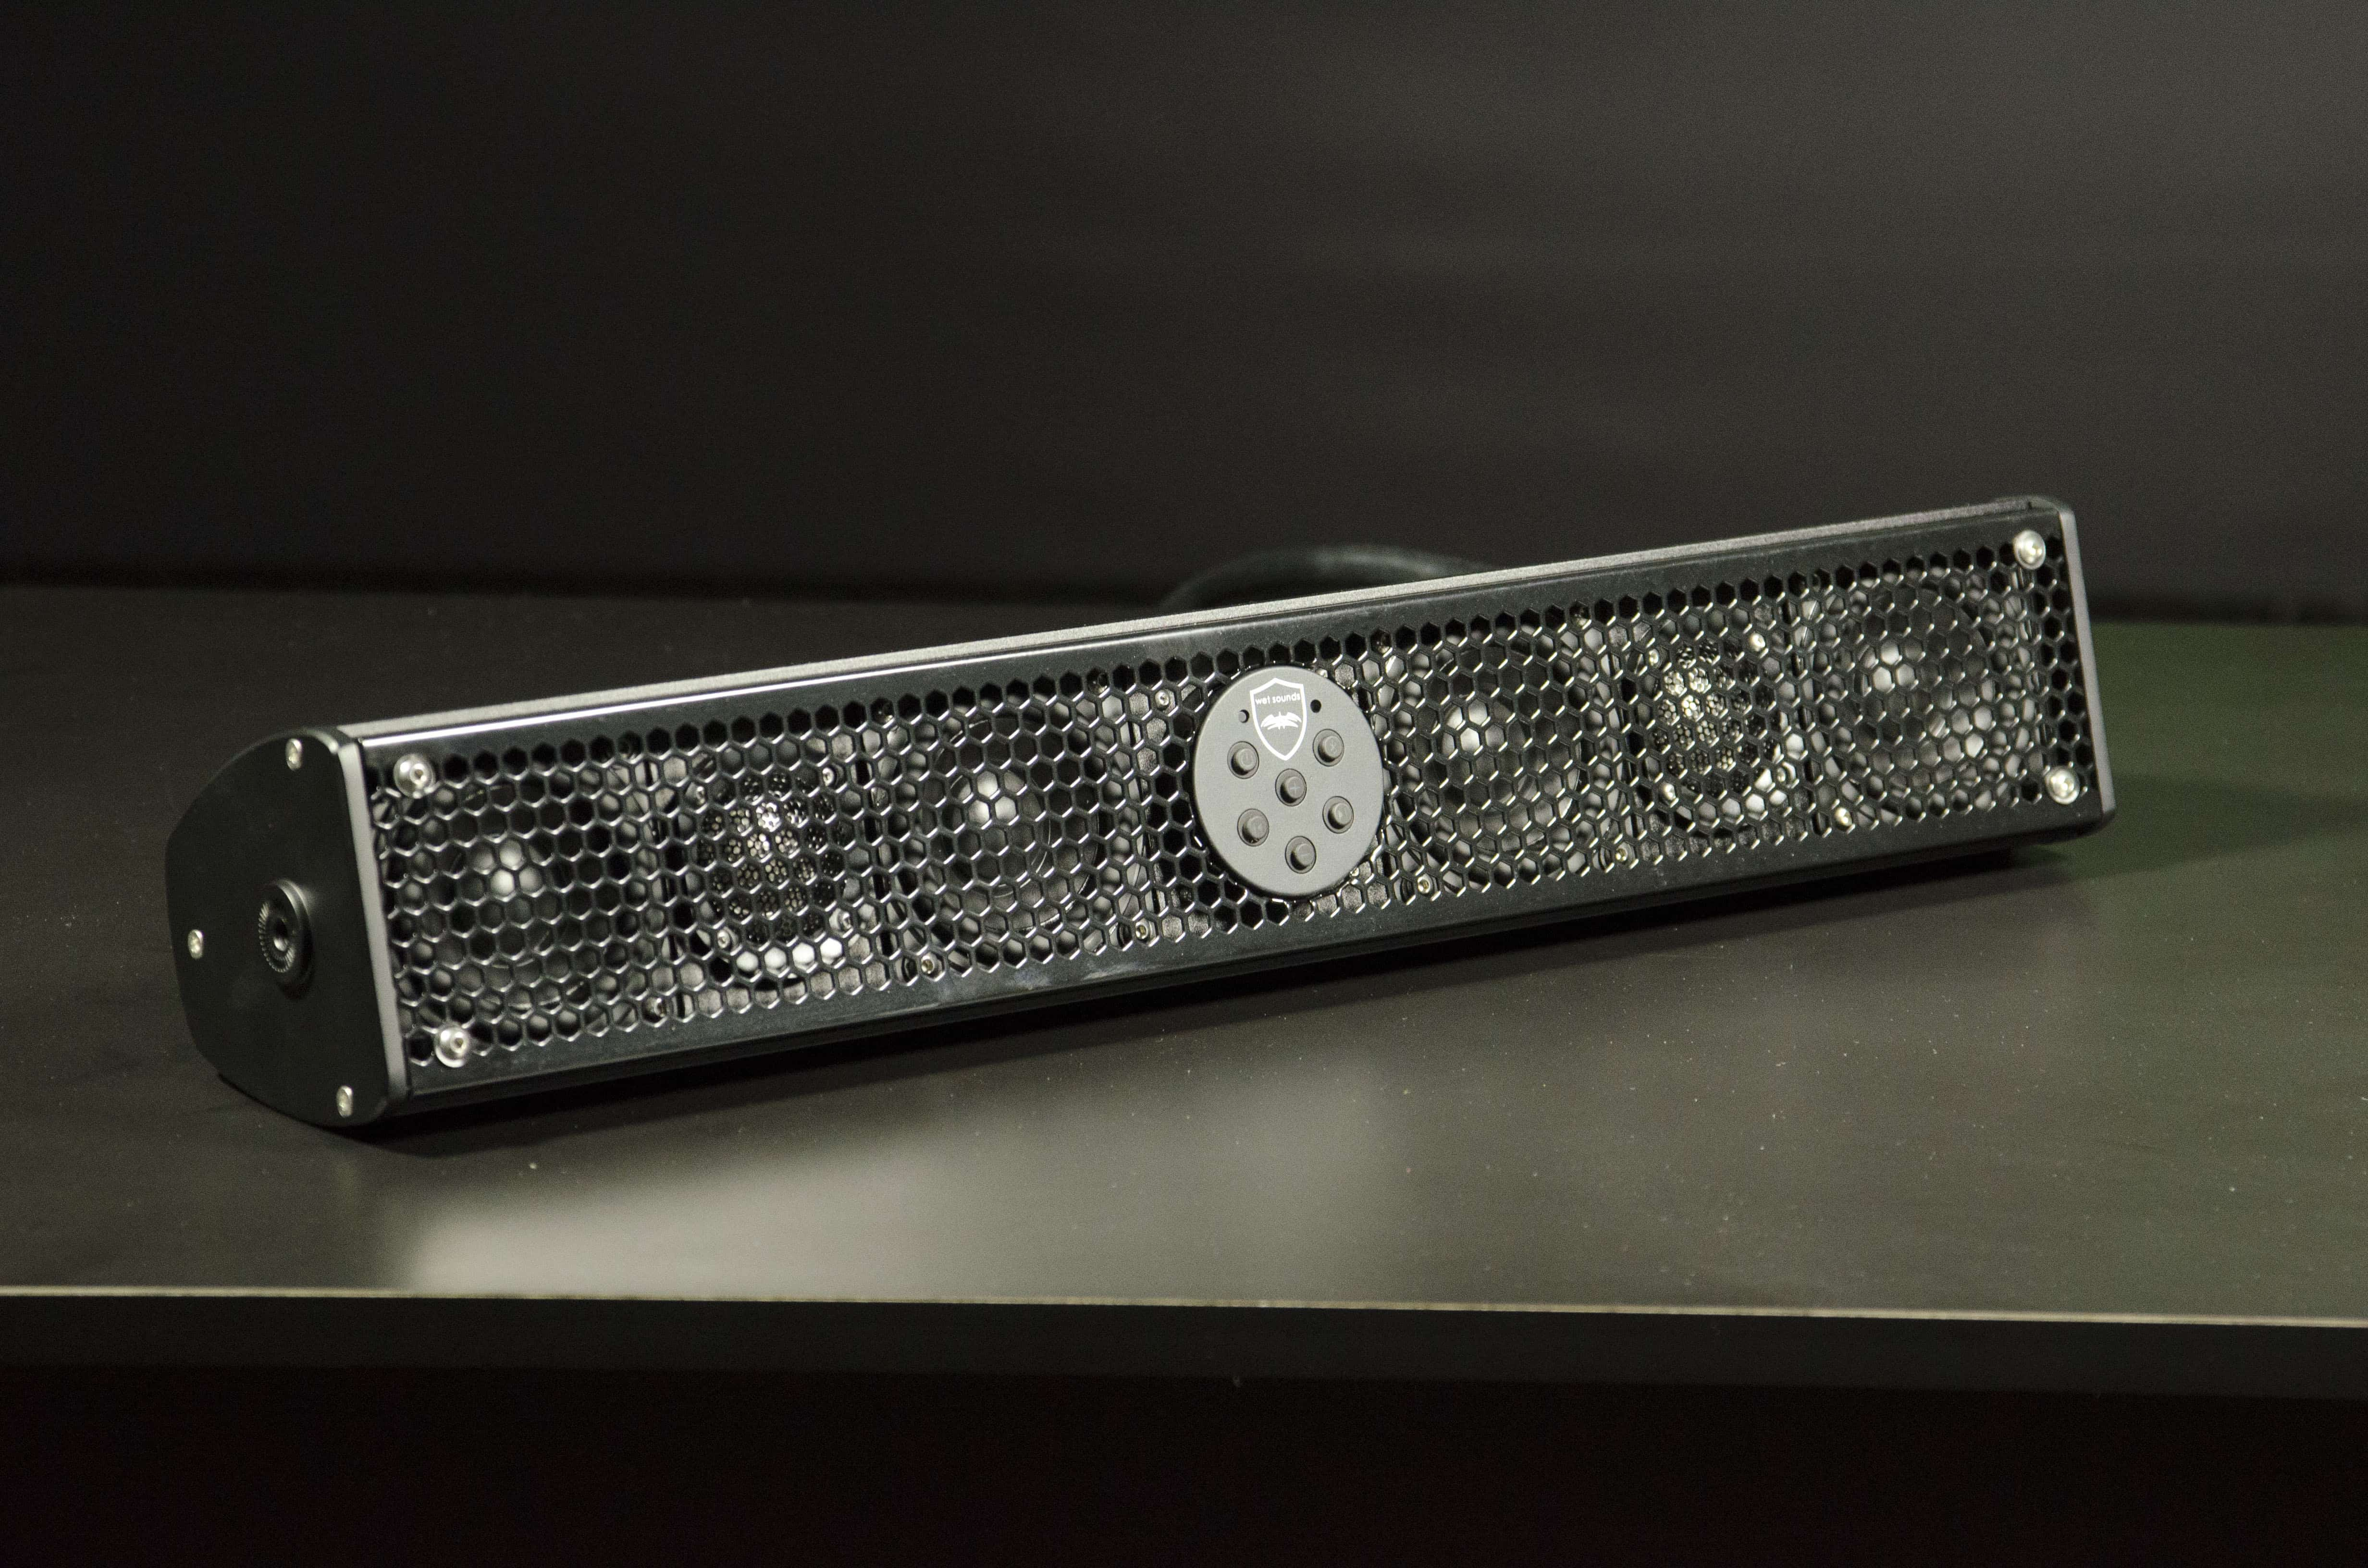 STEALTH ULTRA SERIES Sound Bar by Wet Sounds